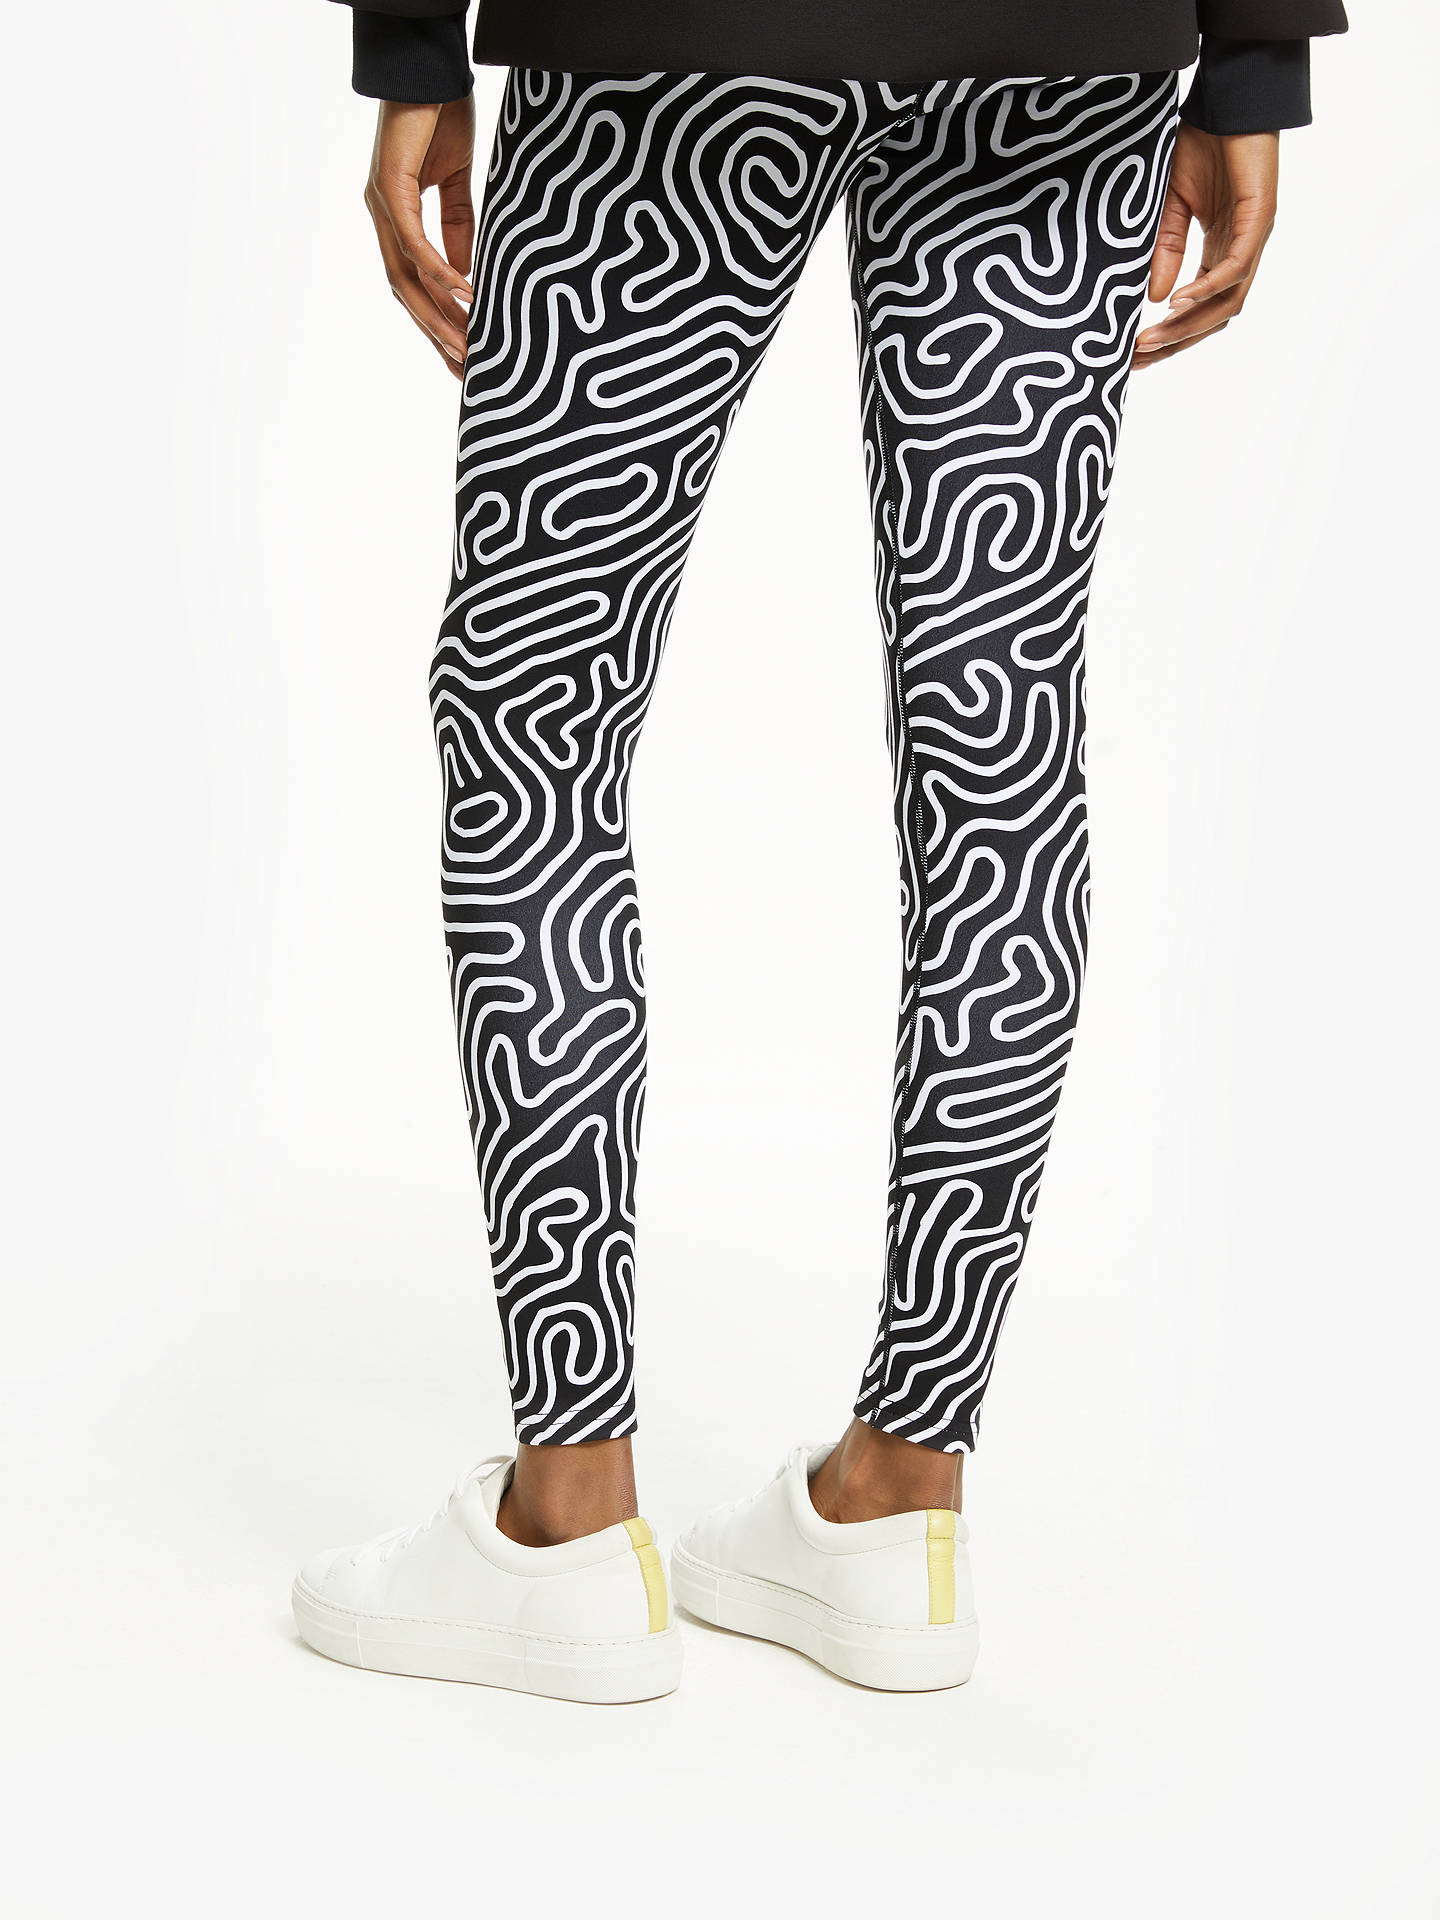 BuyPATTERNITY + John Lewis Rituals Print Leggings, Black/White, M Online at johnlewis.com